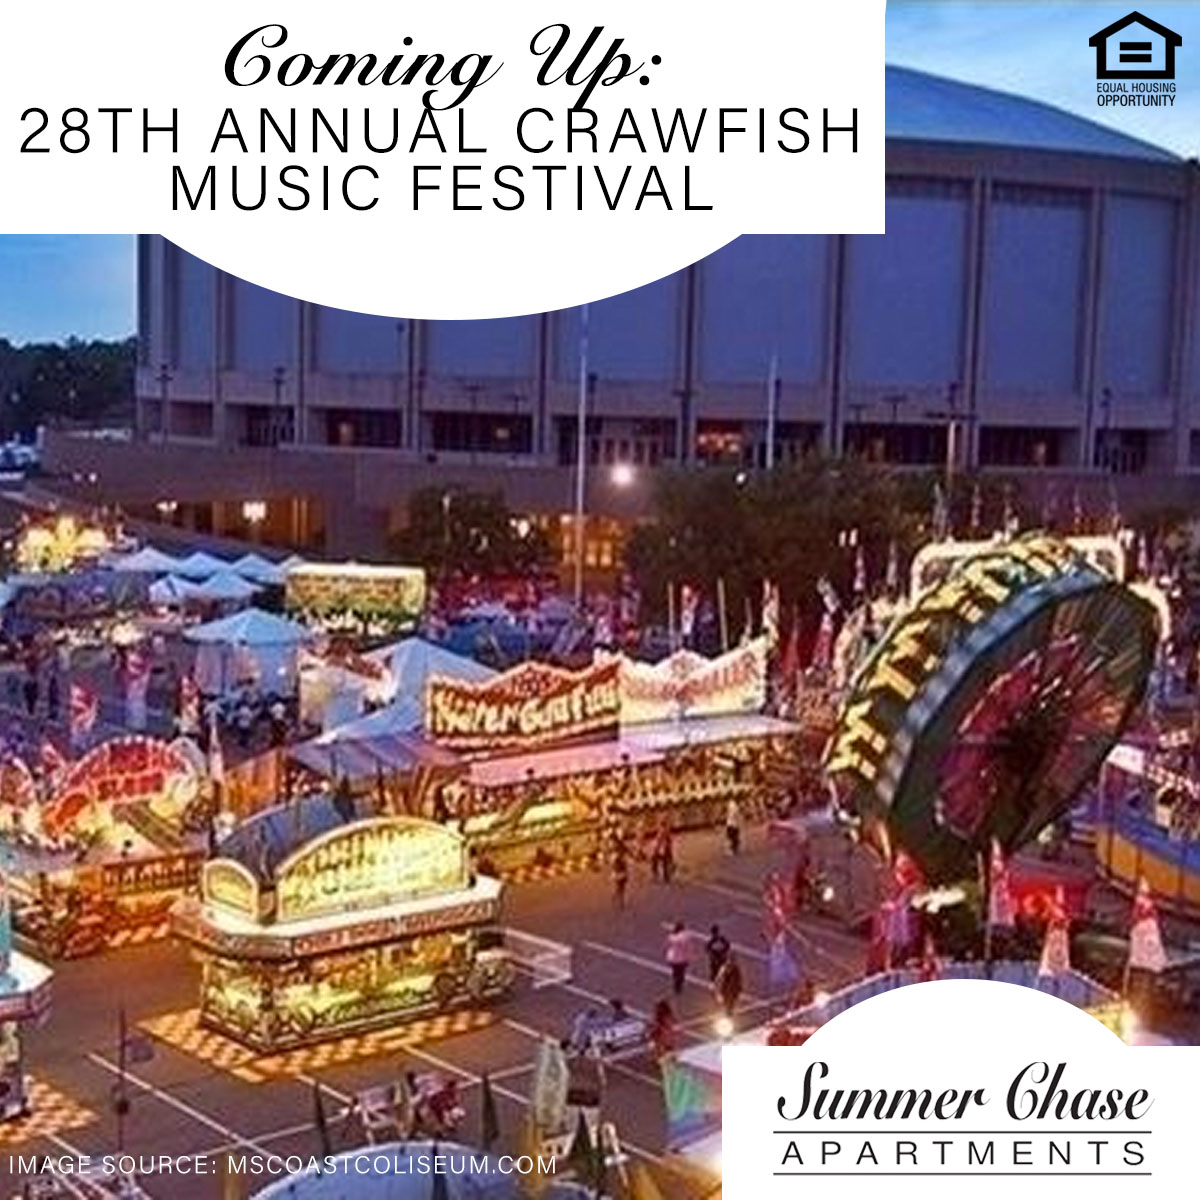 Coming Up: 28th Annual Crawfish Music Festival